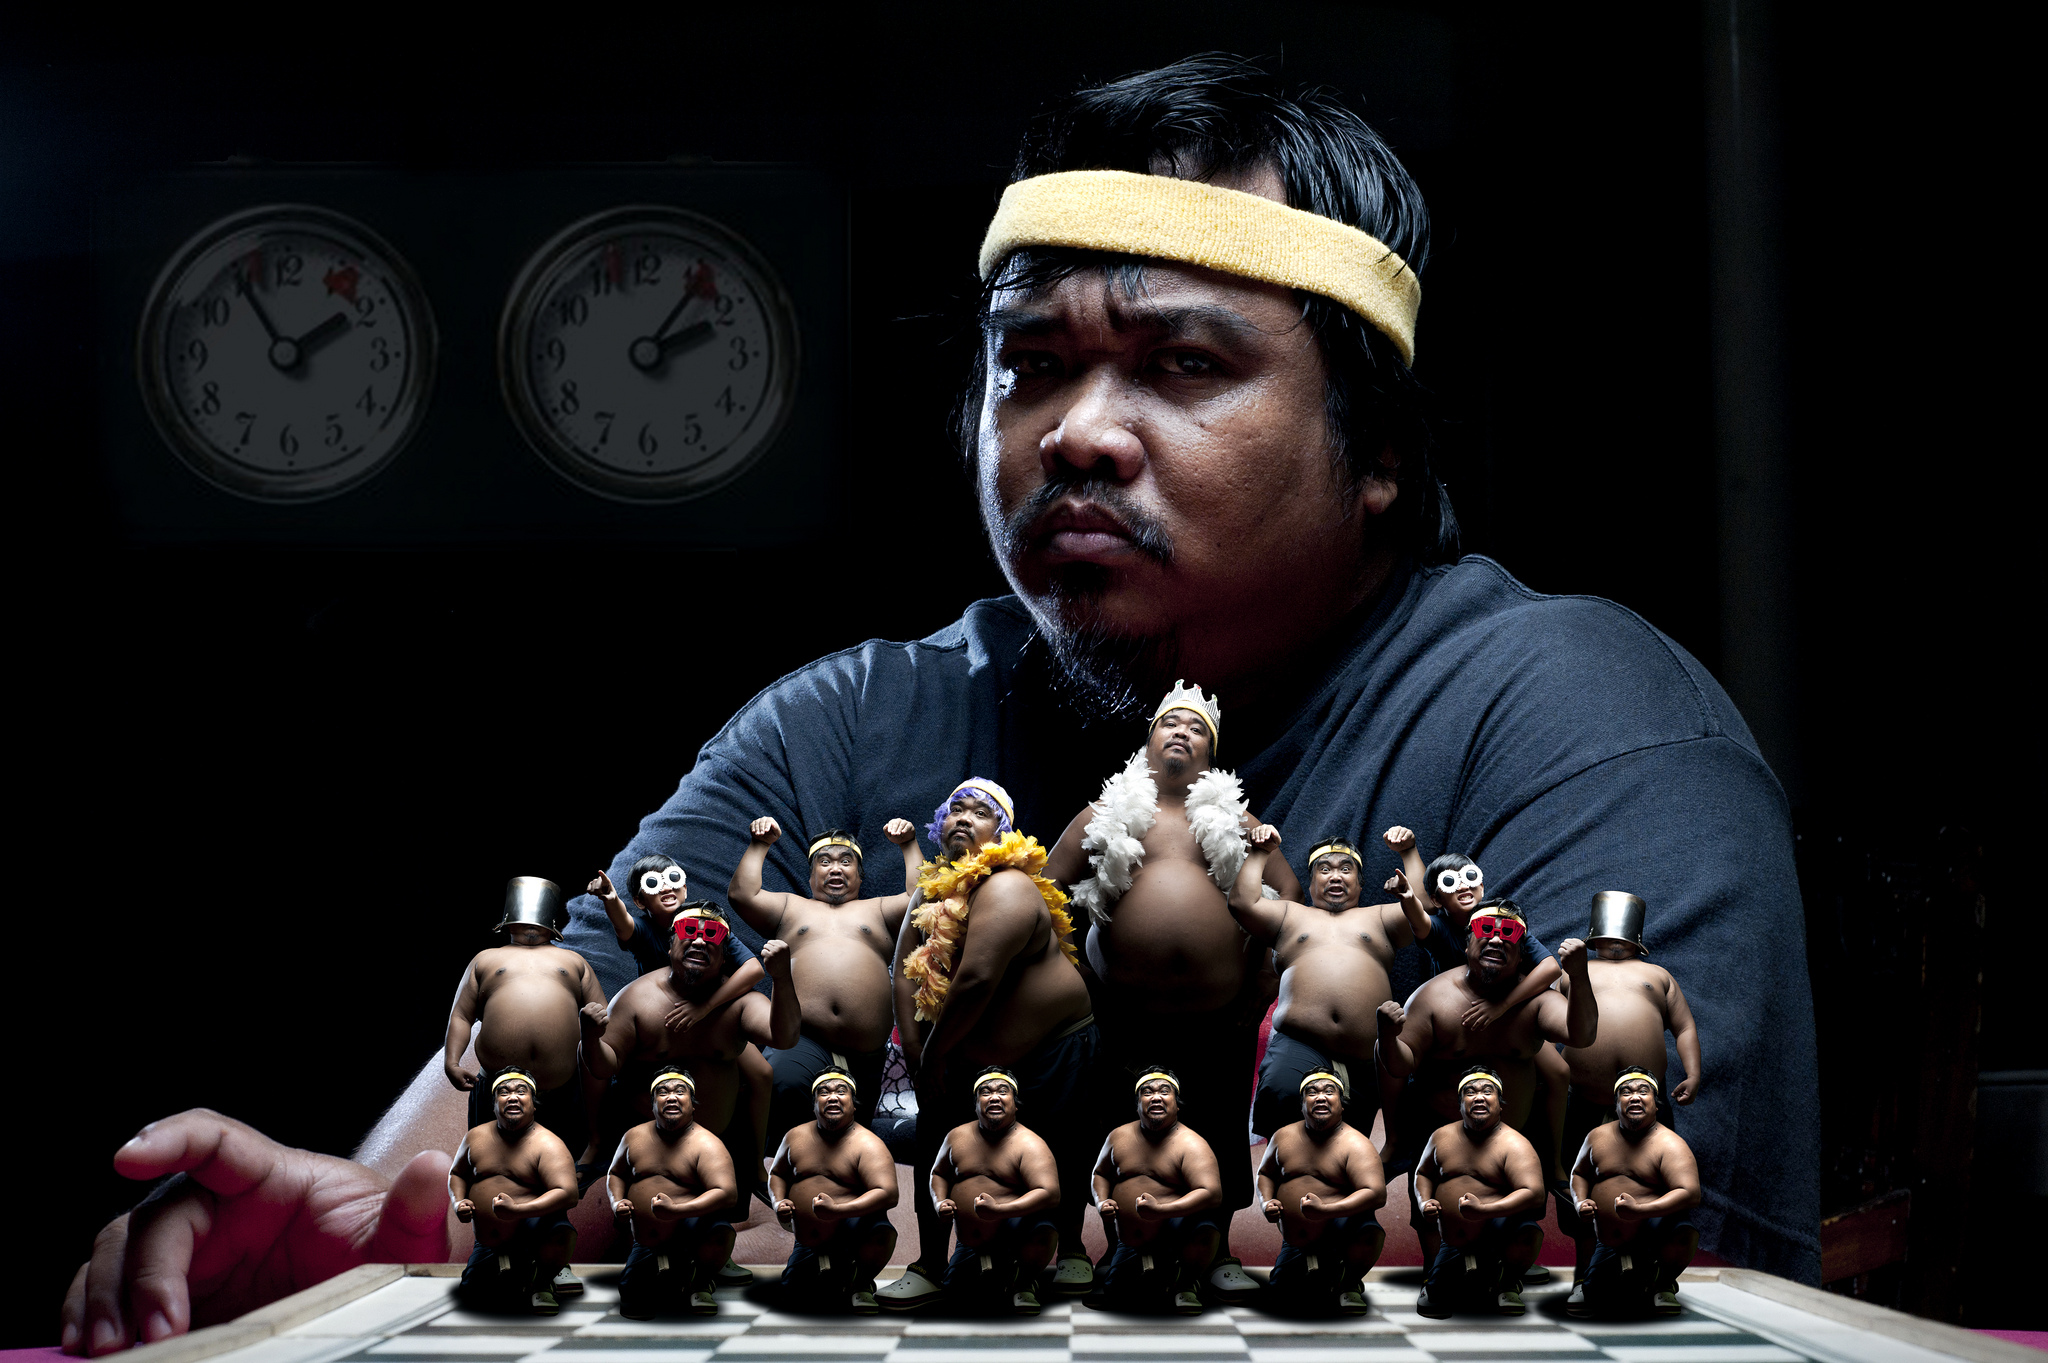 Sumo HD Wallpaper Background Image 2048x1363 ID312479 2048x1363